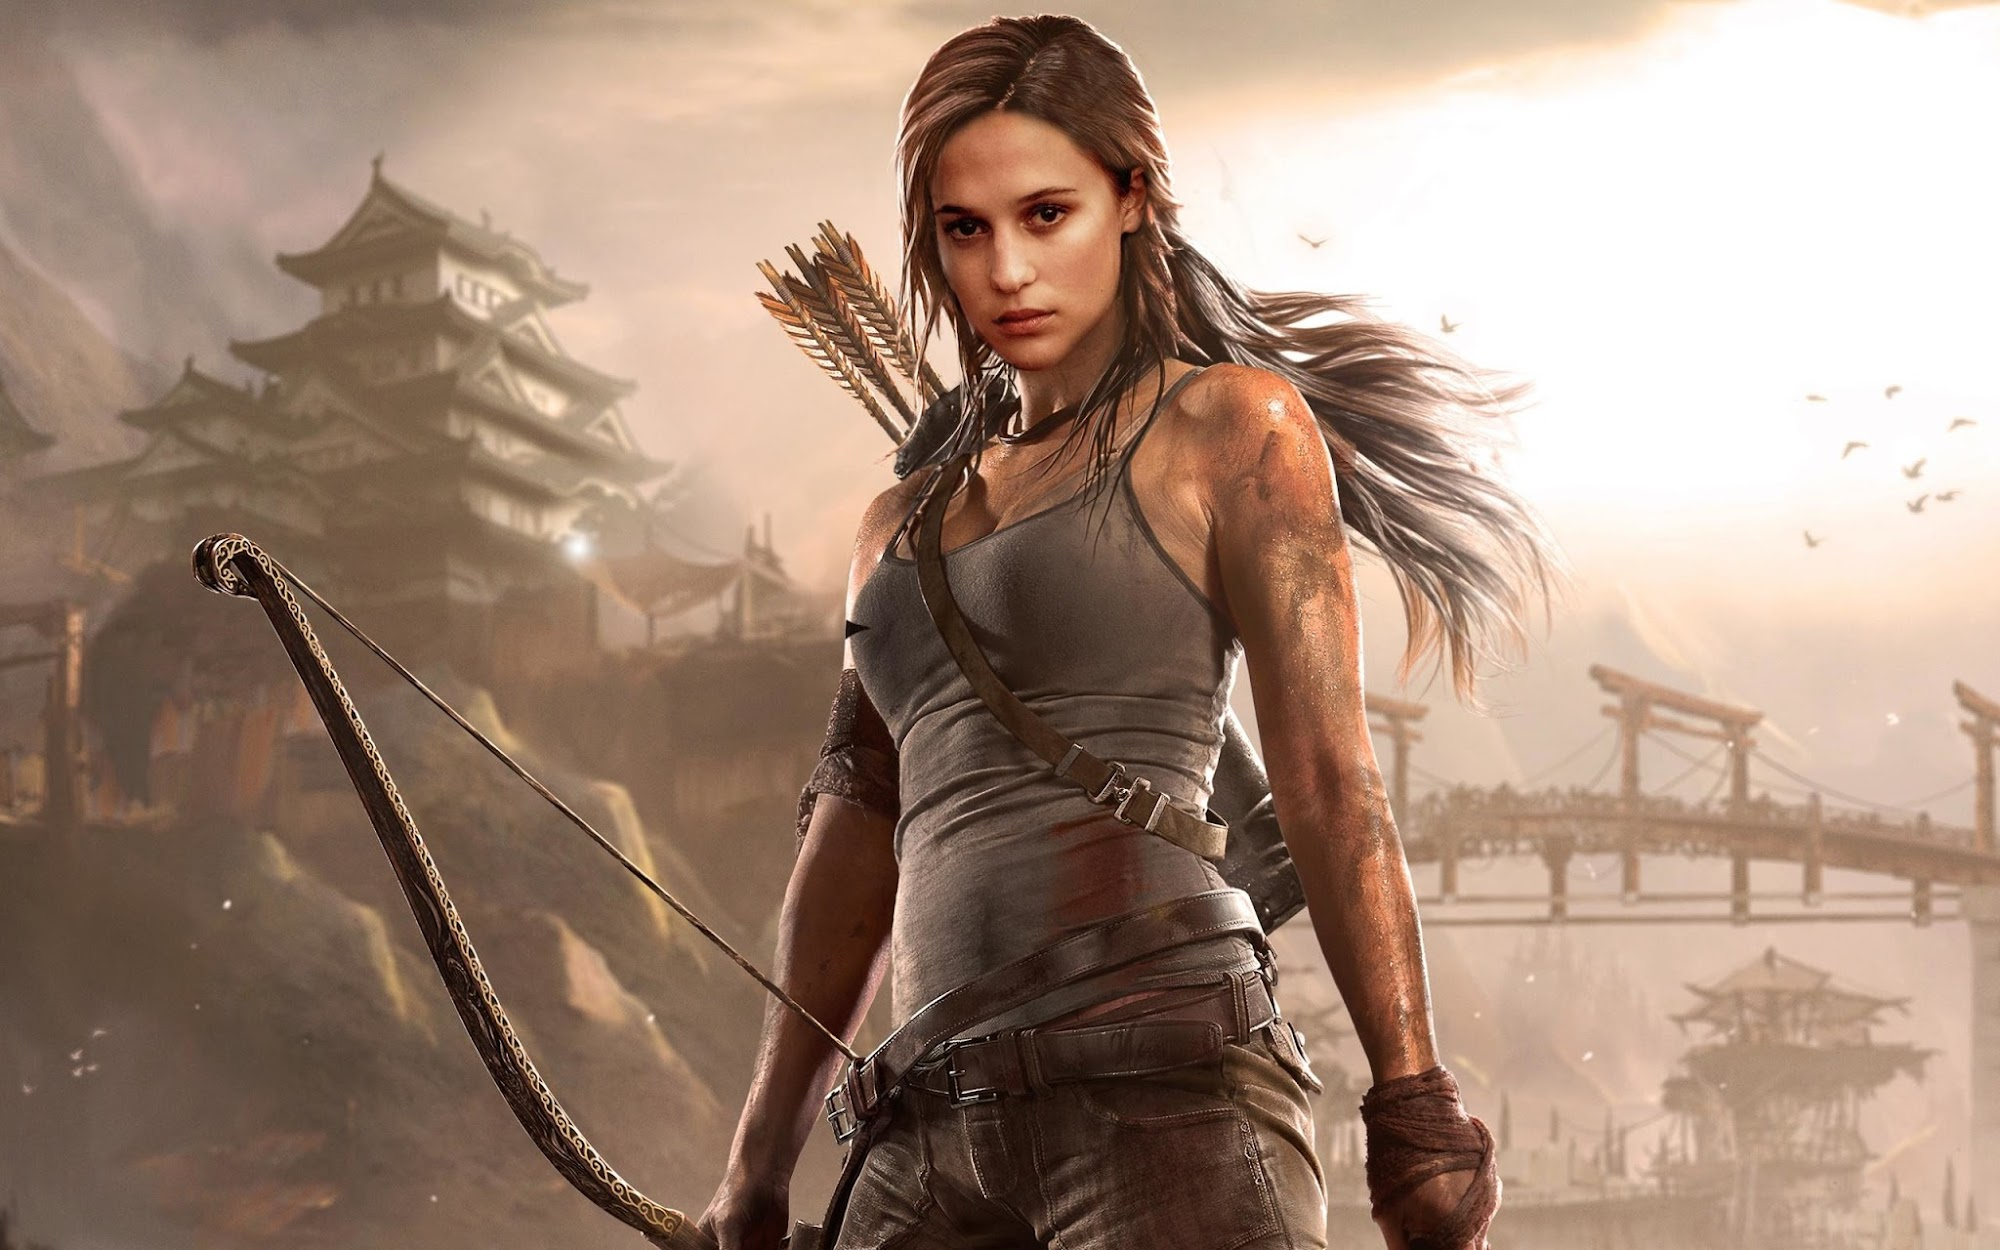 Tomb Raider 2019 Trailer